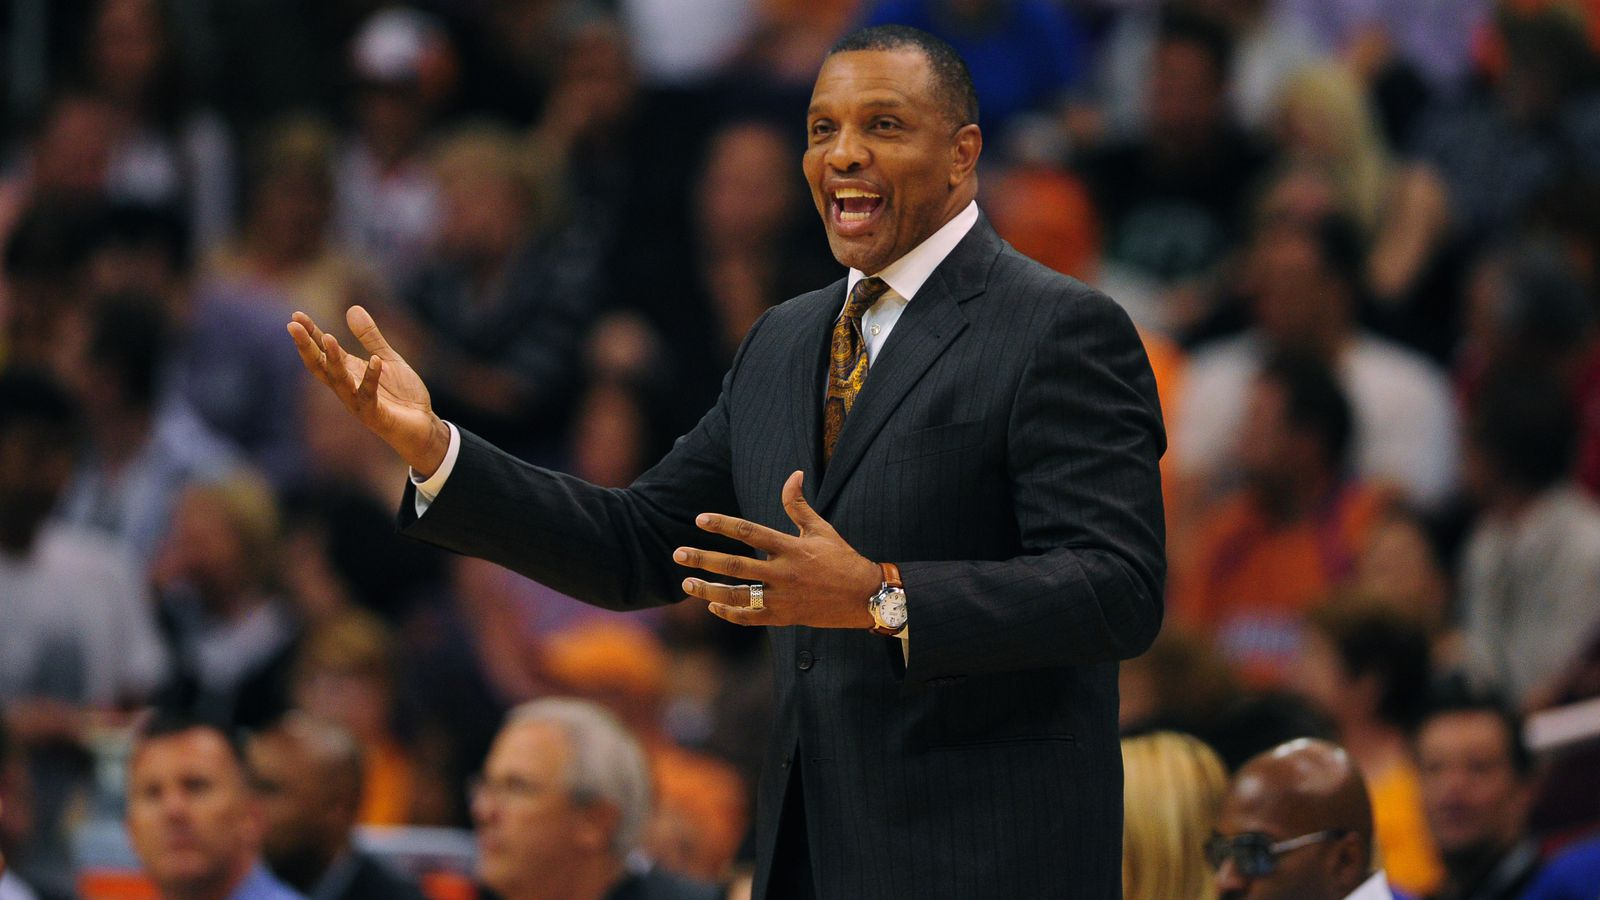 coach u0026 39 s resume  a review of alvin gentry